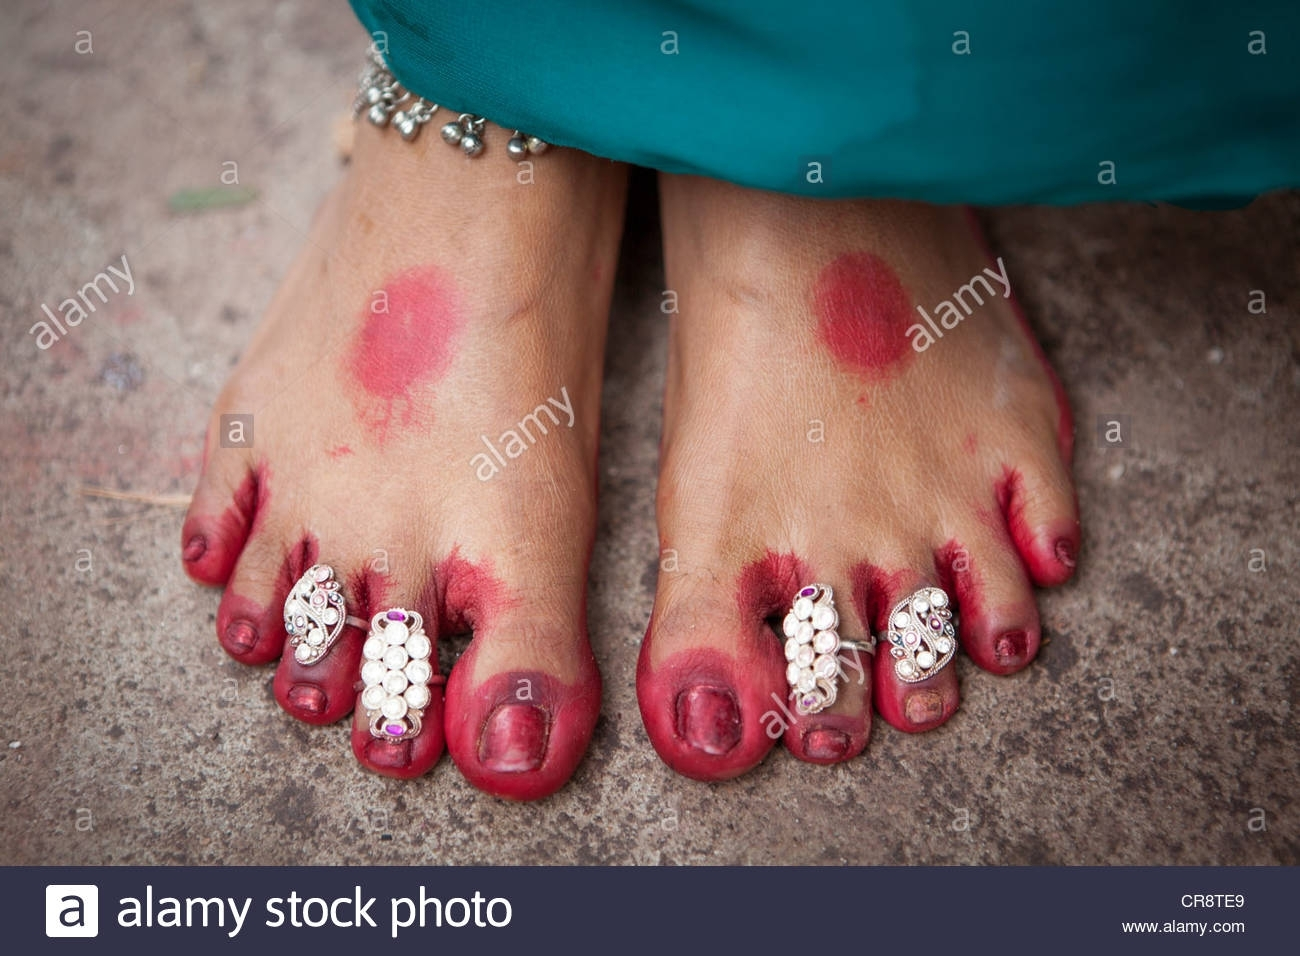 Toe Ring Stock Photos & Toe Ring Stock Images – Alamy For Current Indian Toe Rings (View 10 of 15)